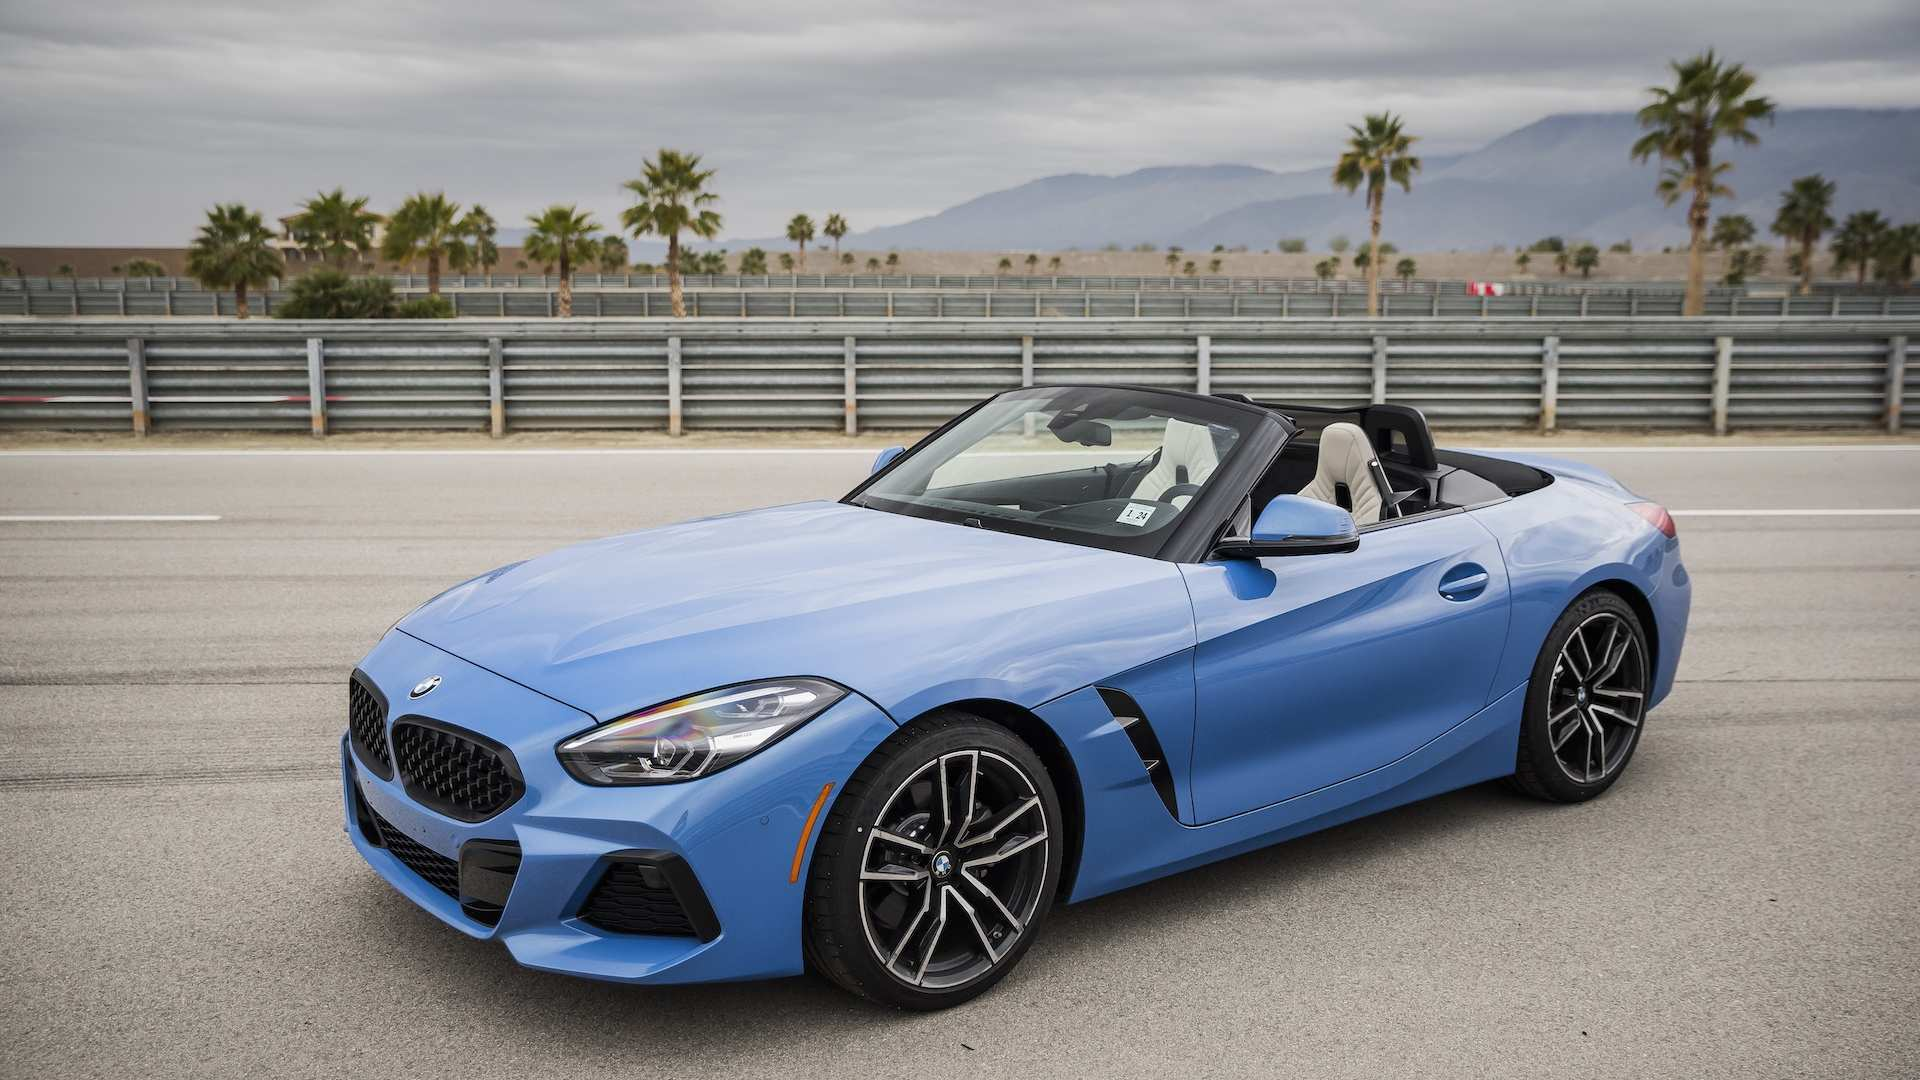 99 Great 2019 Bmw Z4 Research New with 2019 Bmw Z4